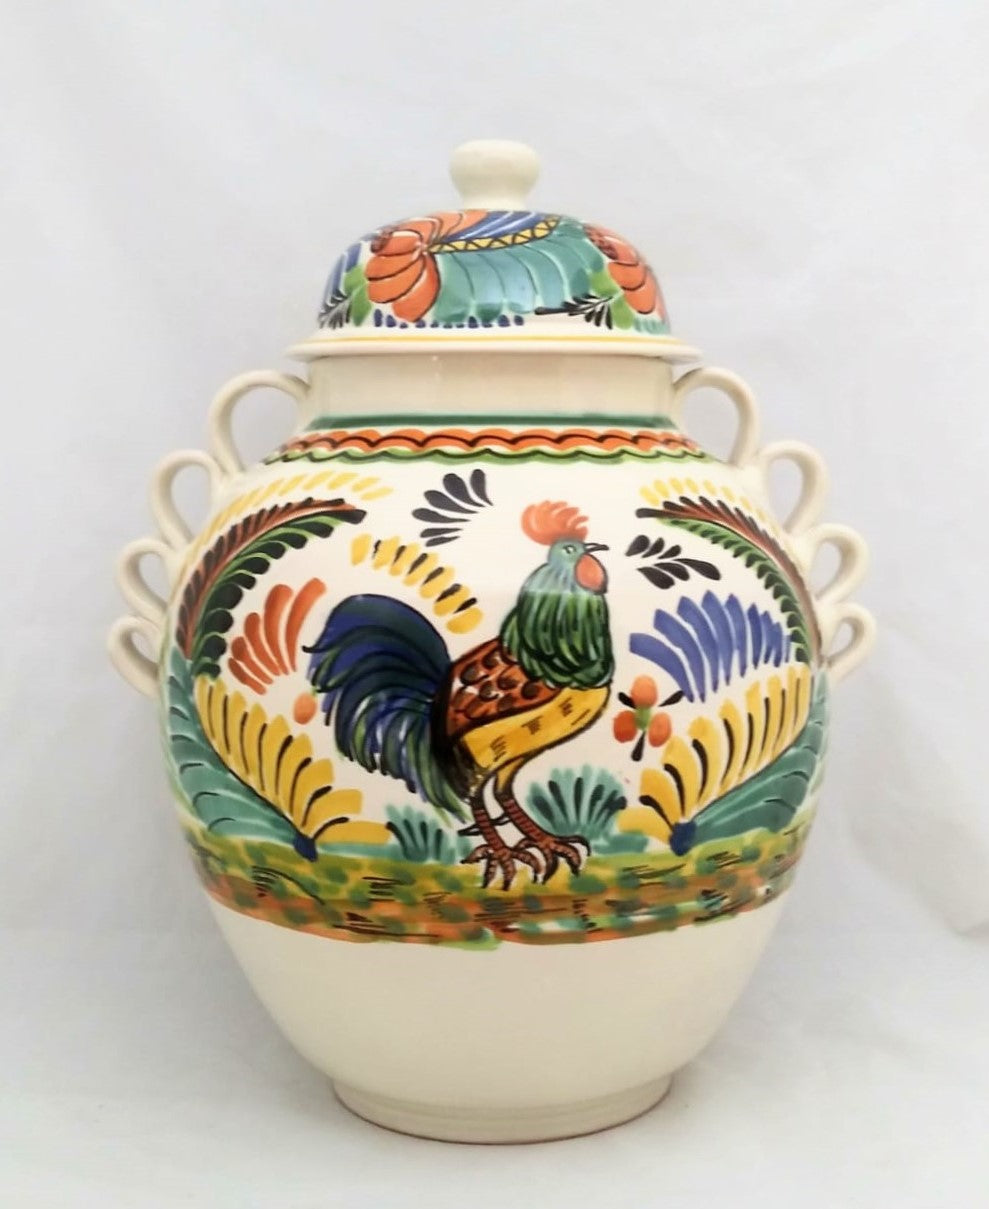 Rooster Decorative Vase Large Gto Jar 16.5